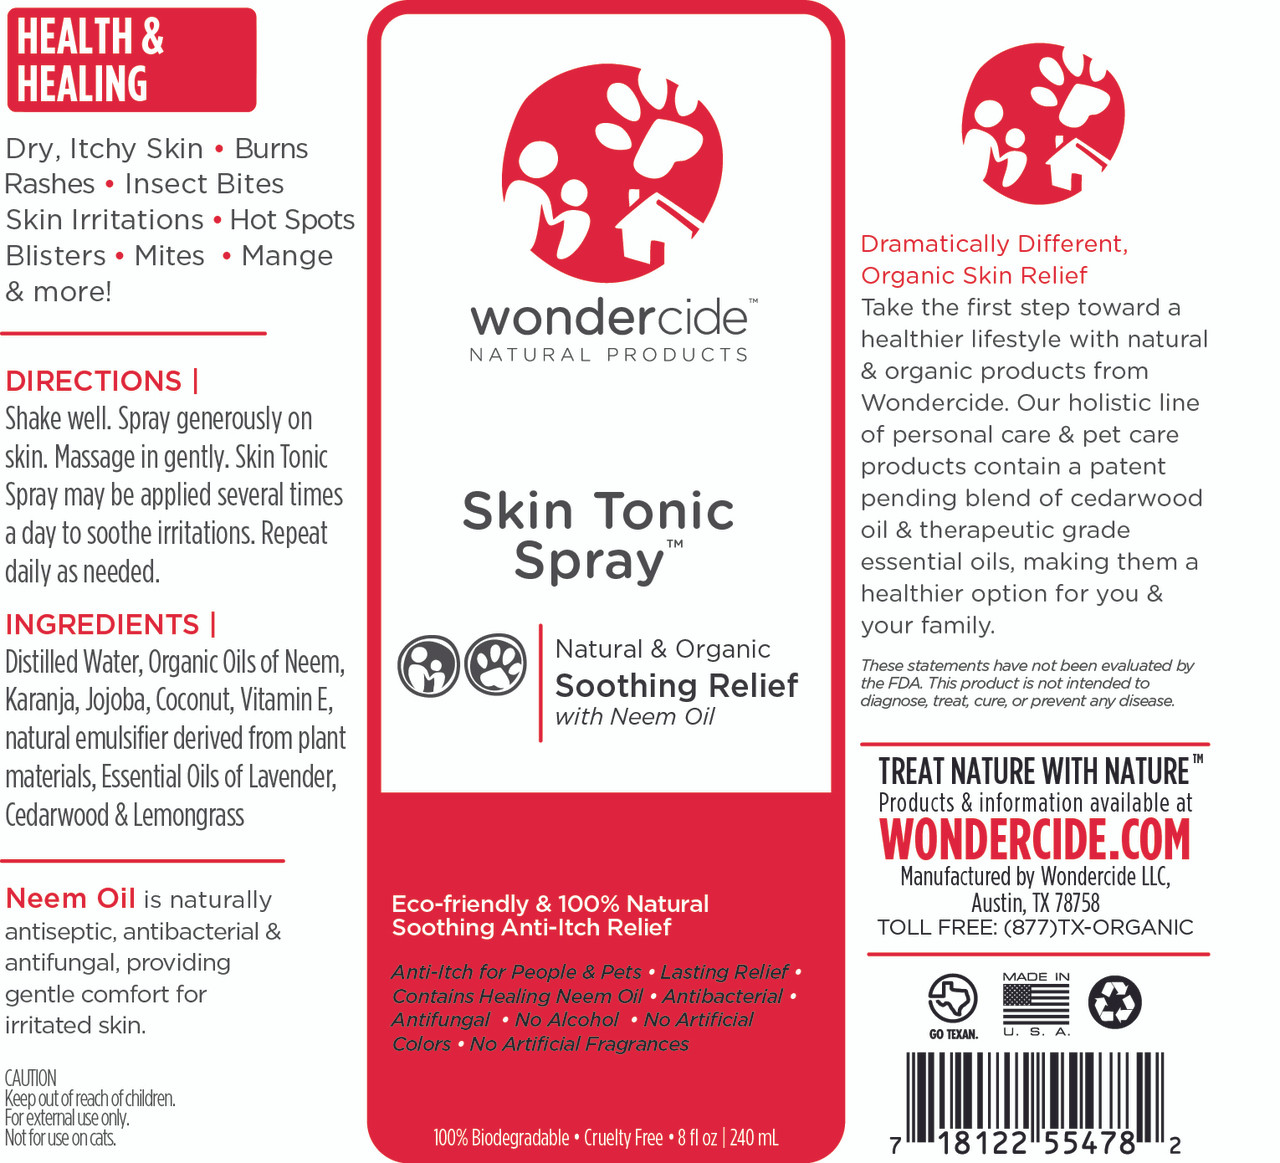 Skin Tonic Spray | Full Body Anit-Itch Relief | Label